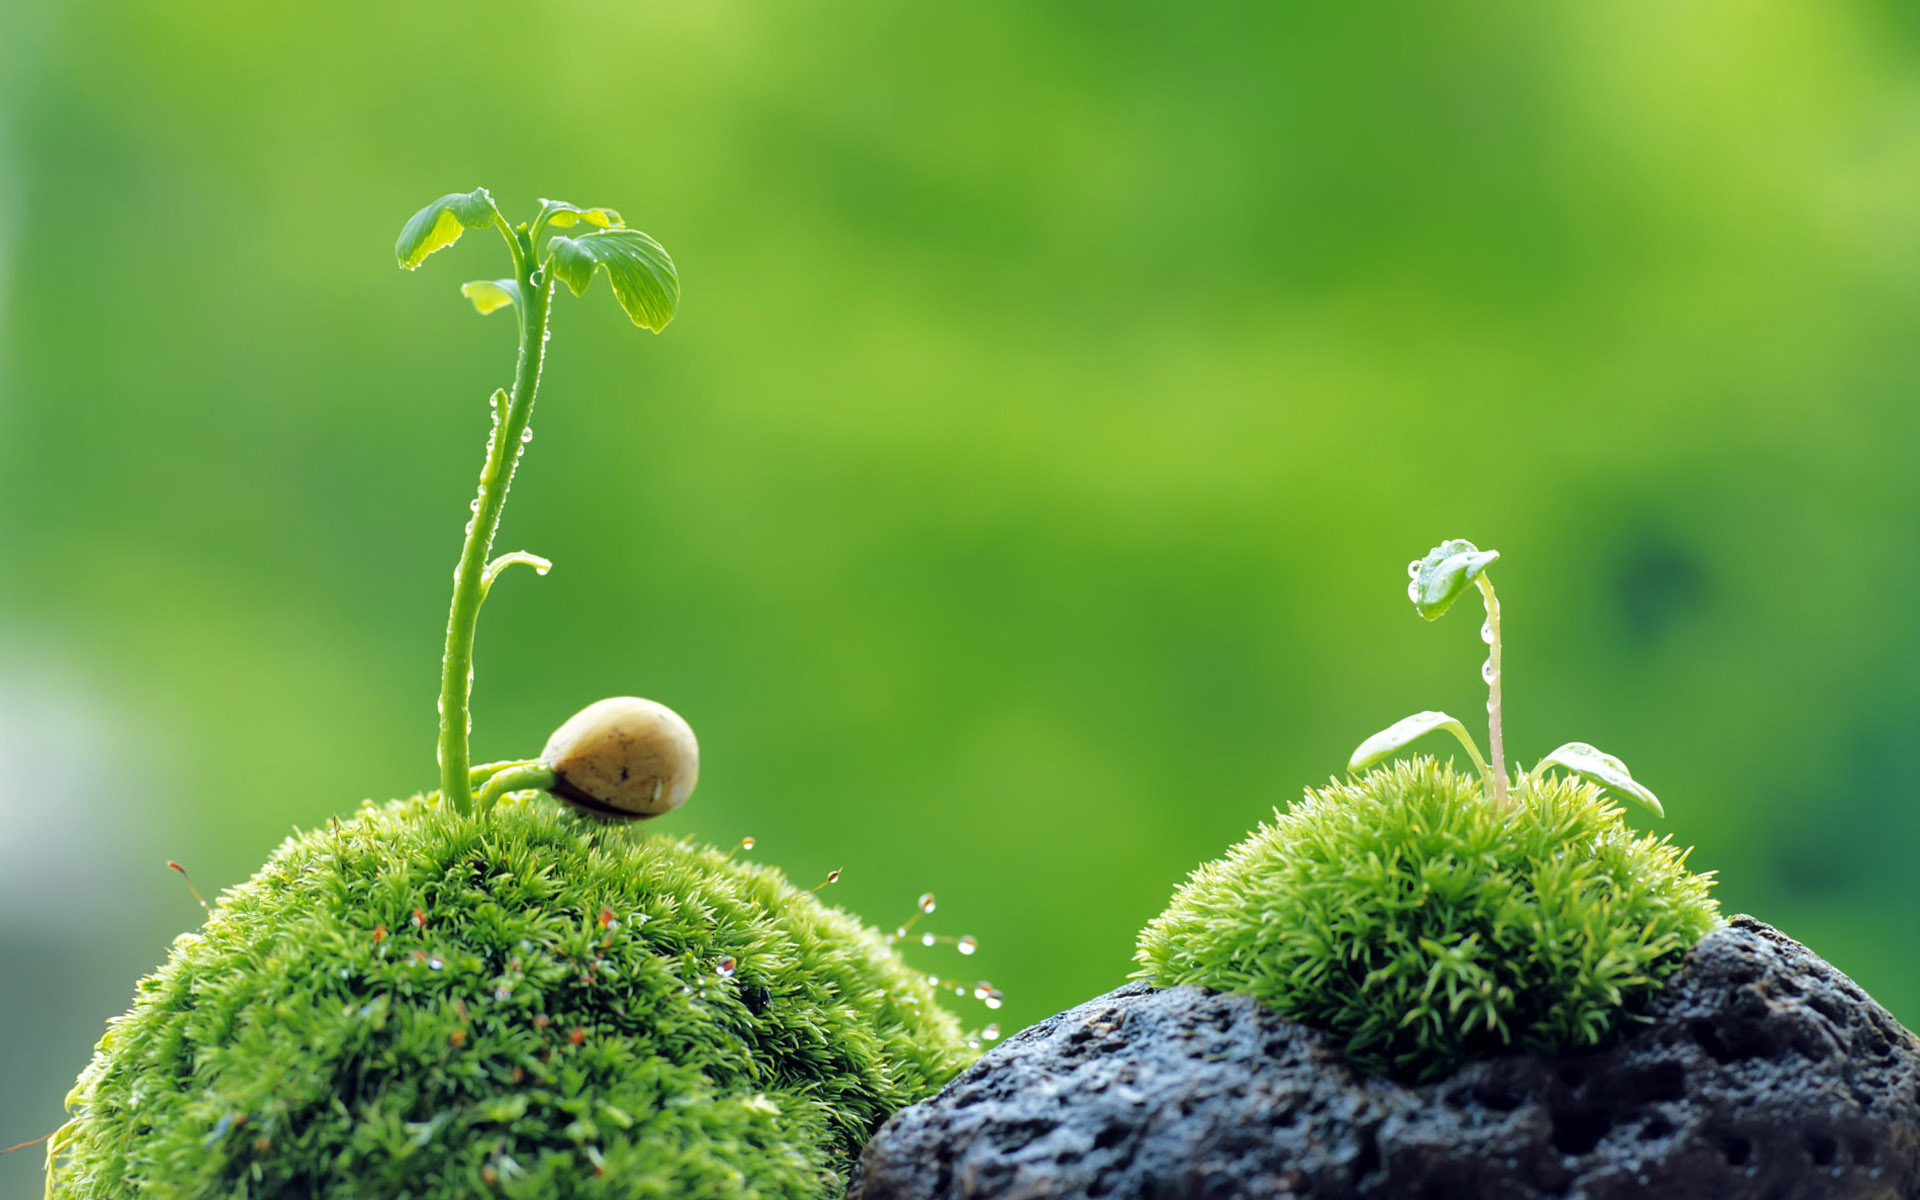 Free Nature Wallpaper Download For Laptop